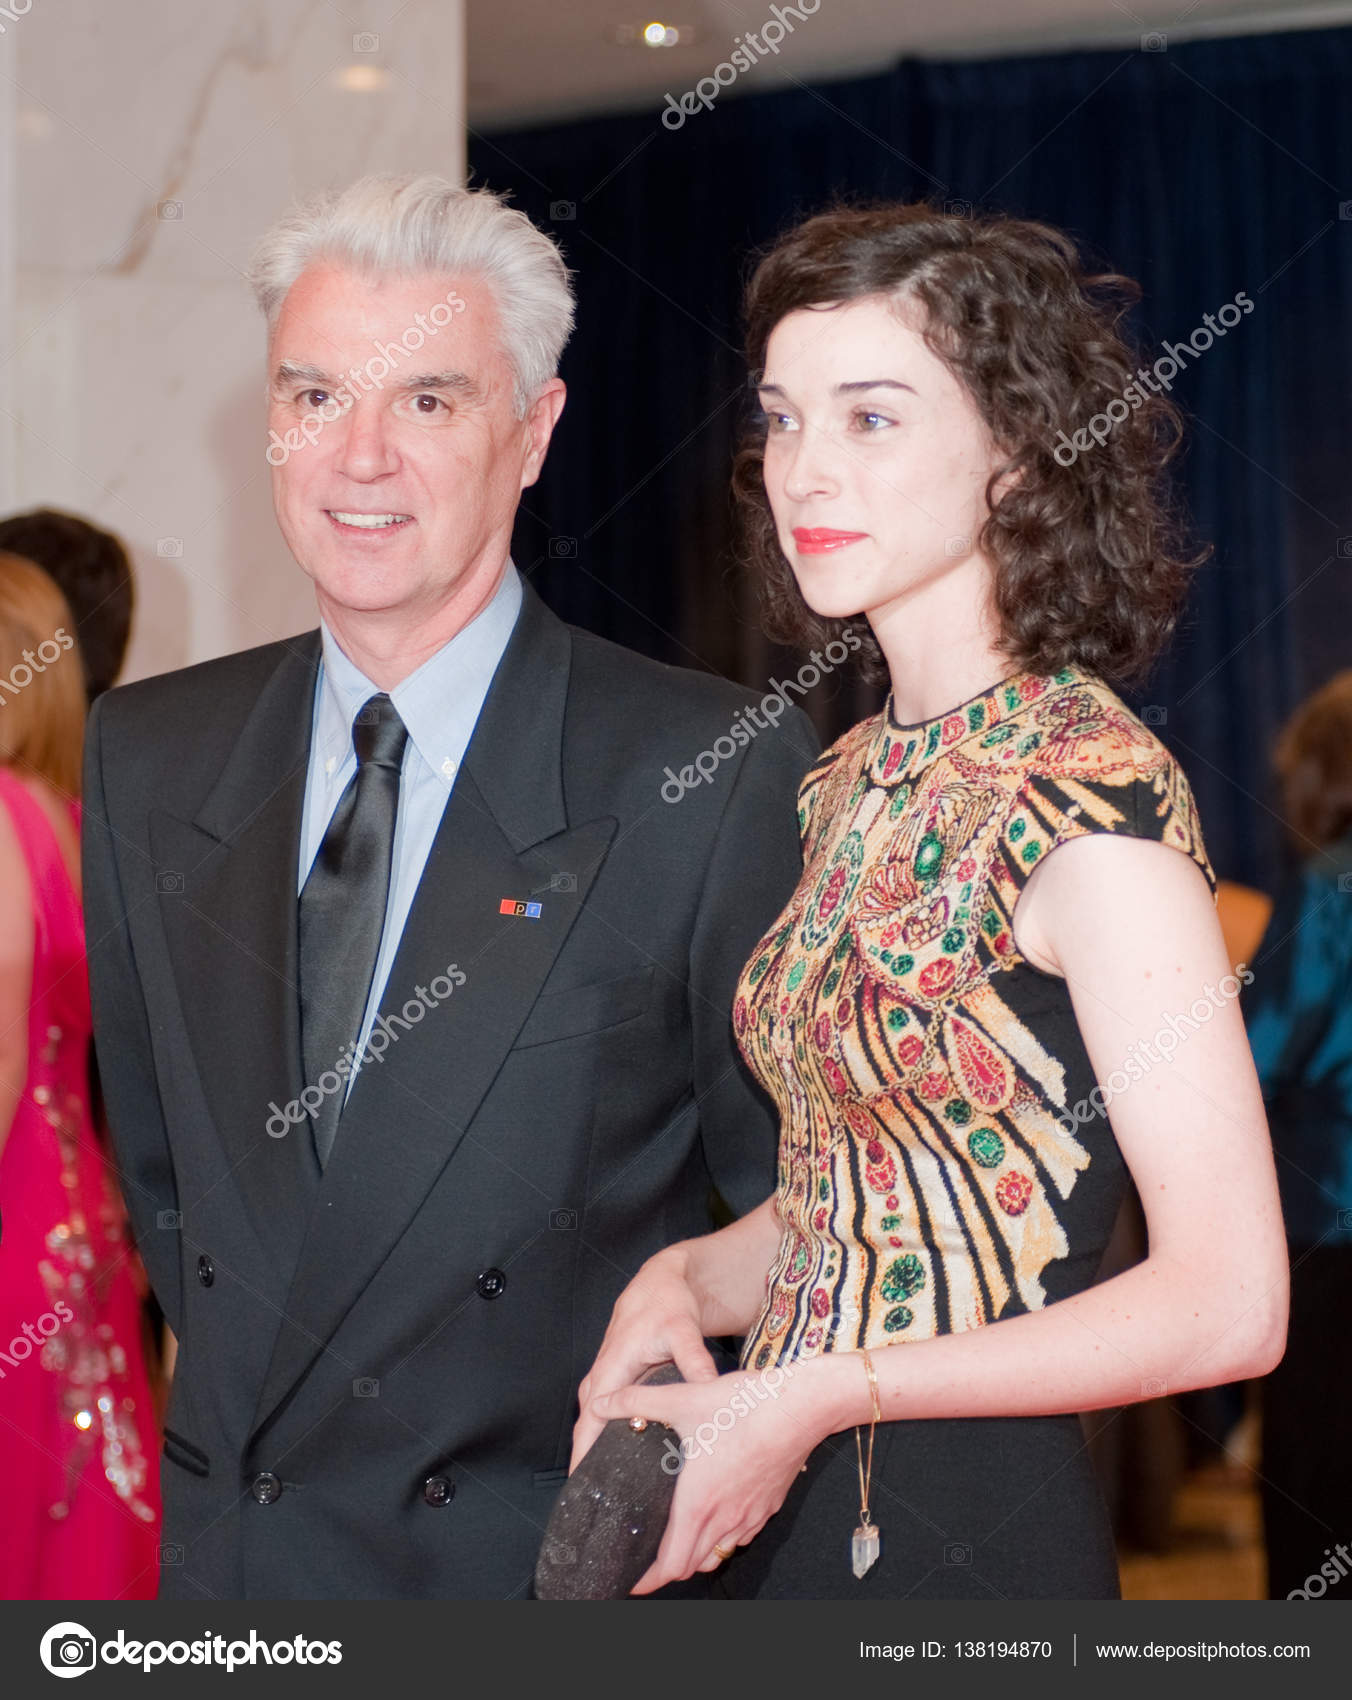 Annie clark and david byrne dating. dating in 2015 quotes about breaking.